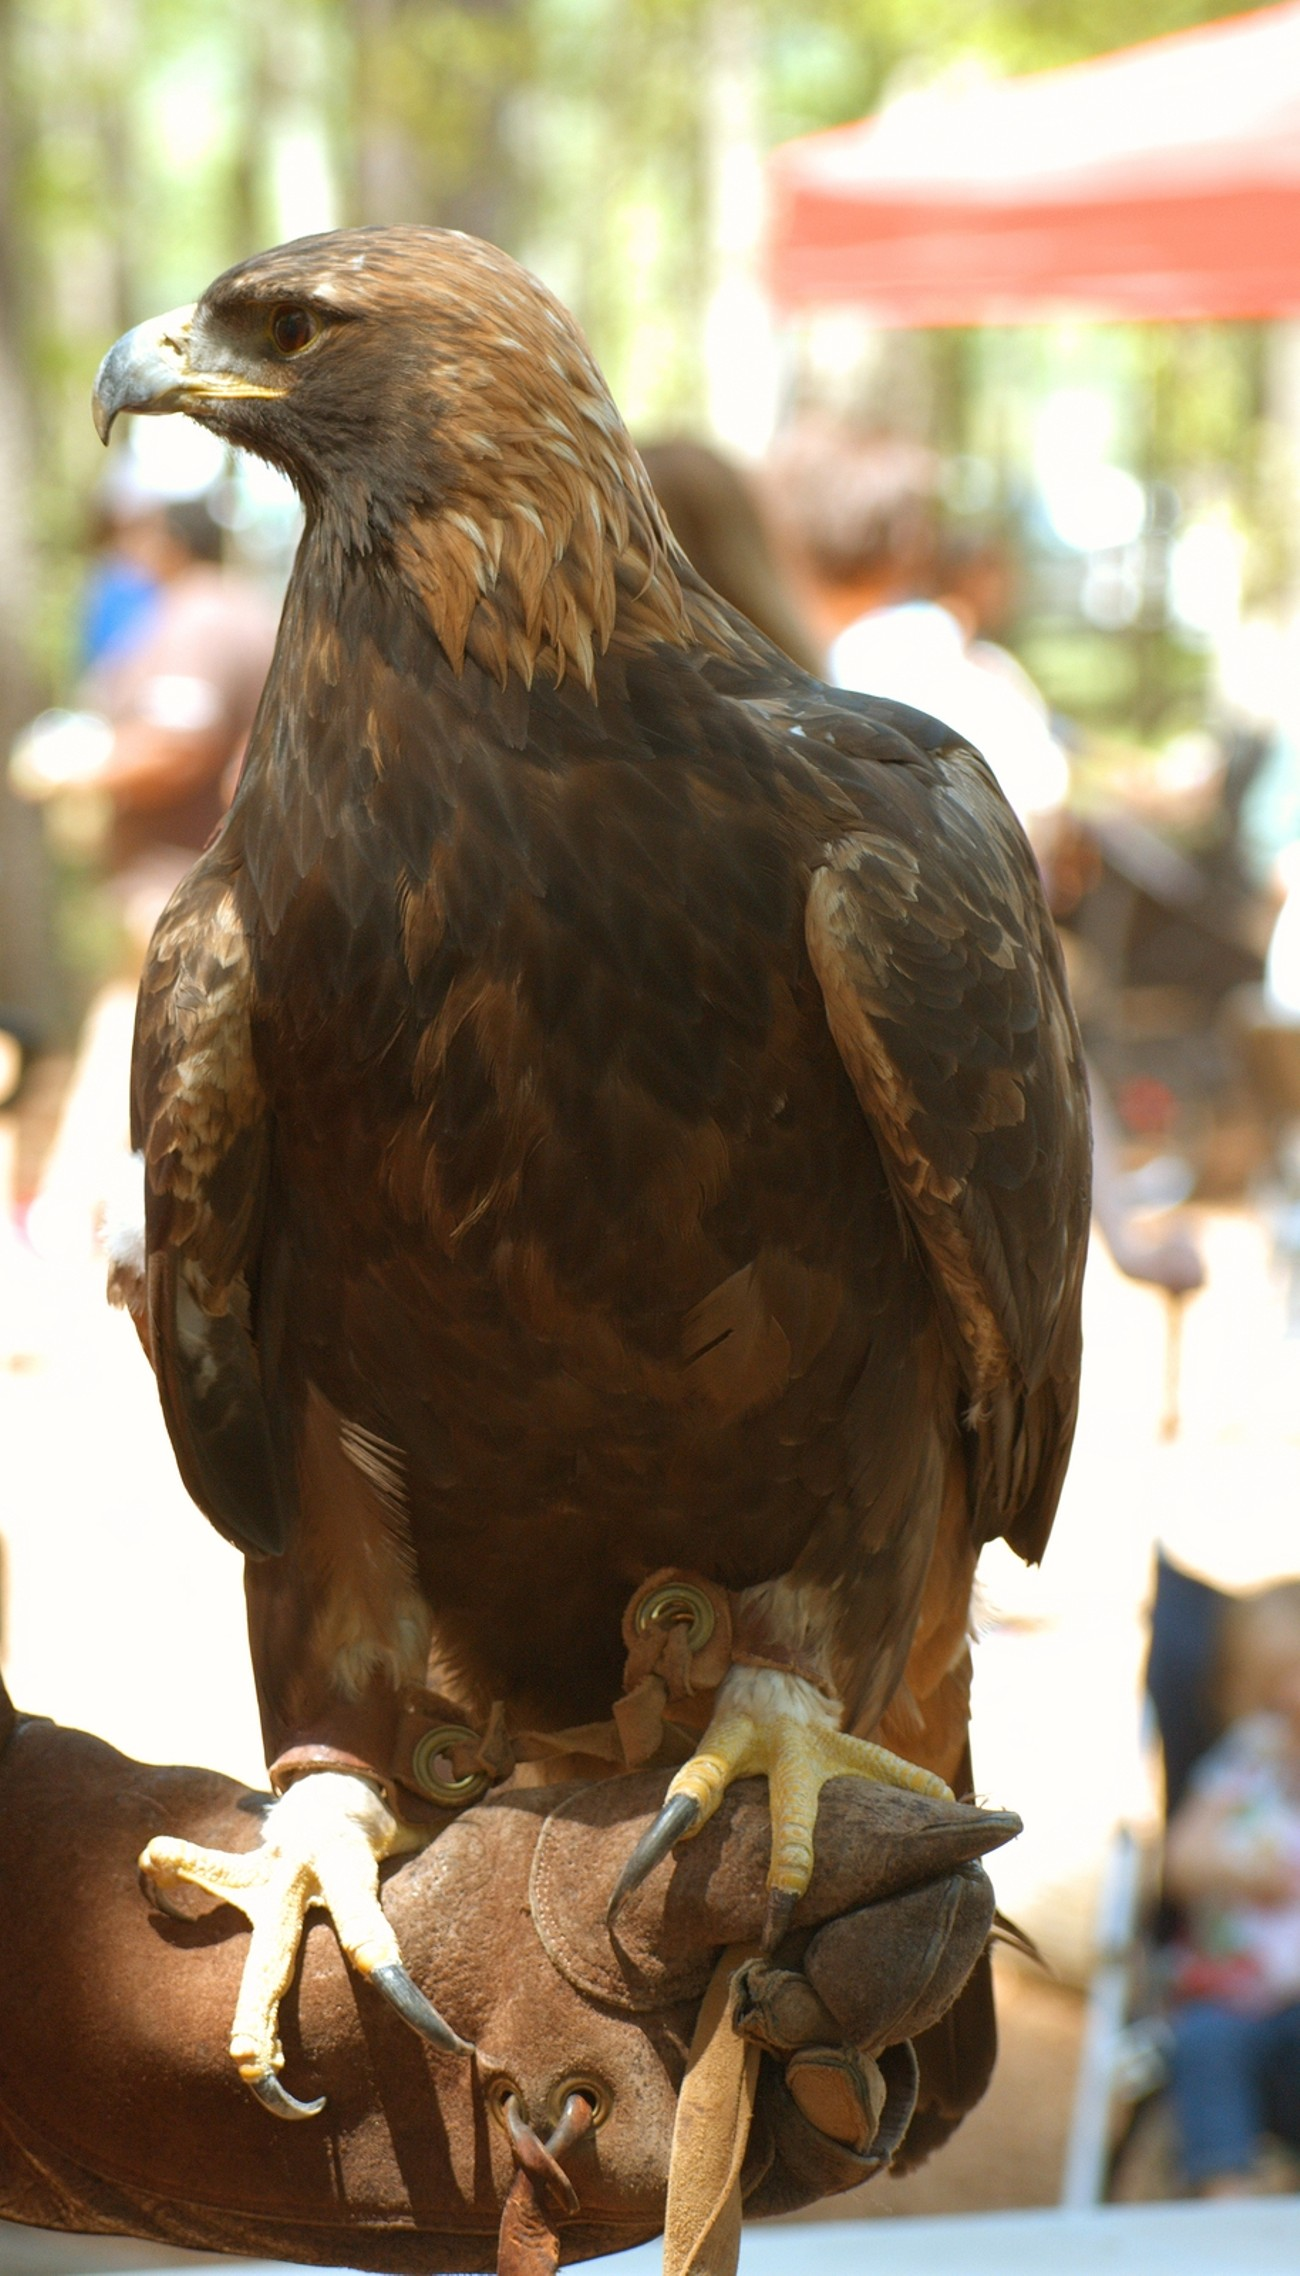 Rehabbing Golden Eagle on display at Hates Nature Preserve on Earth Day. Thanks to Auburn University for the show